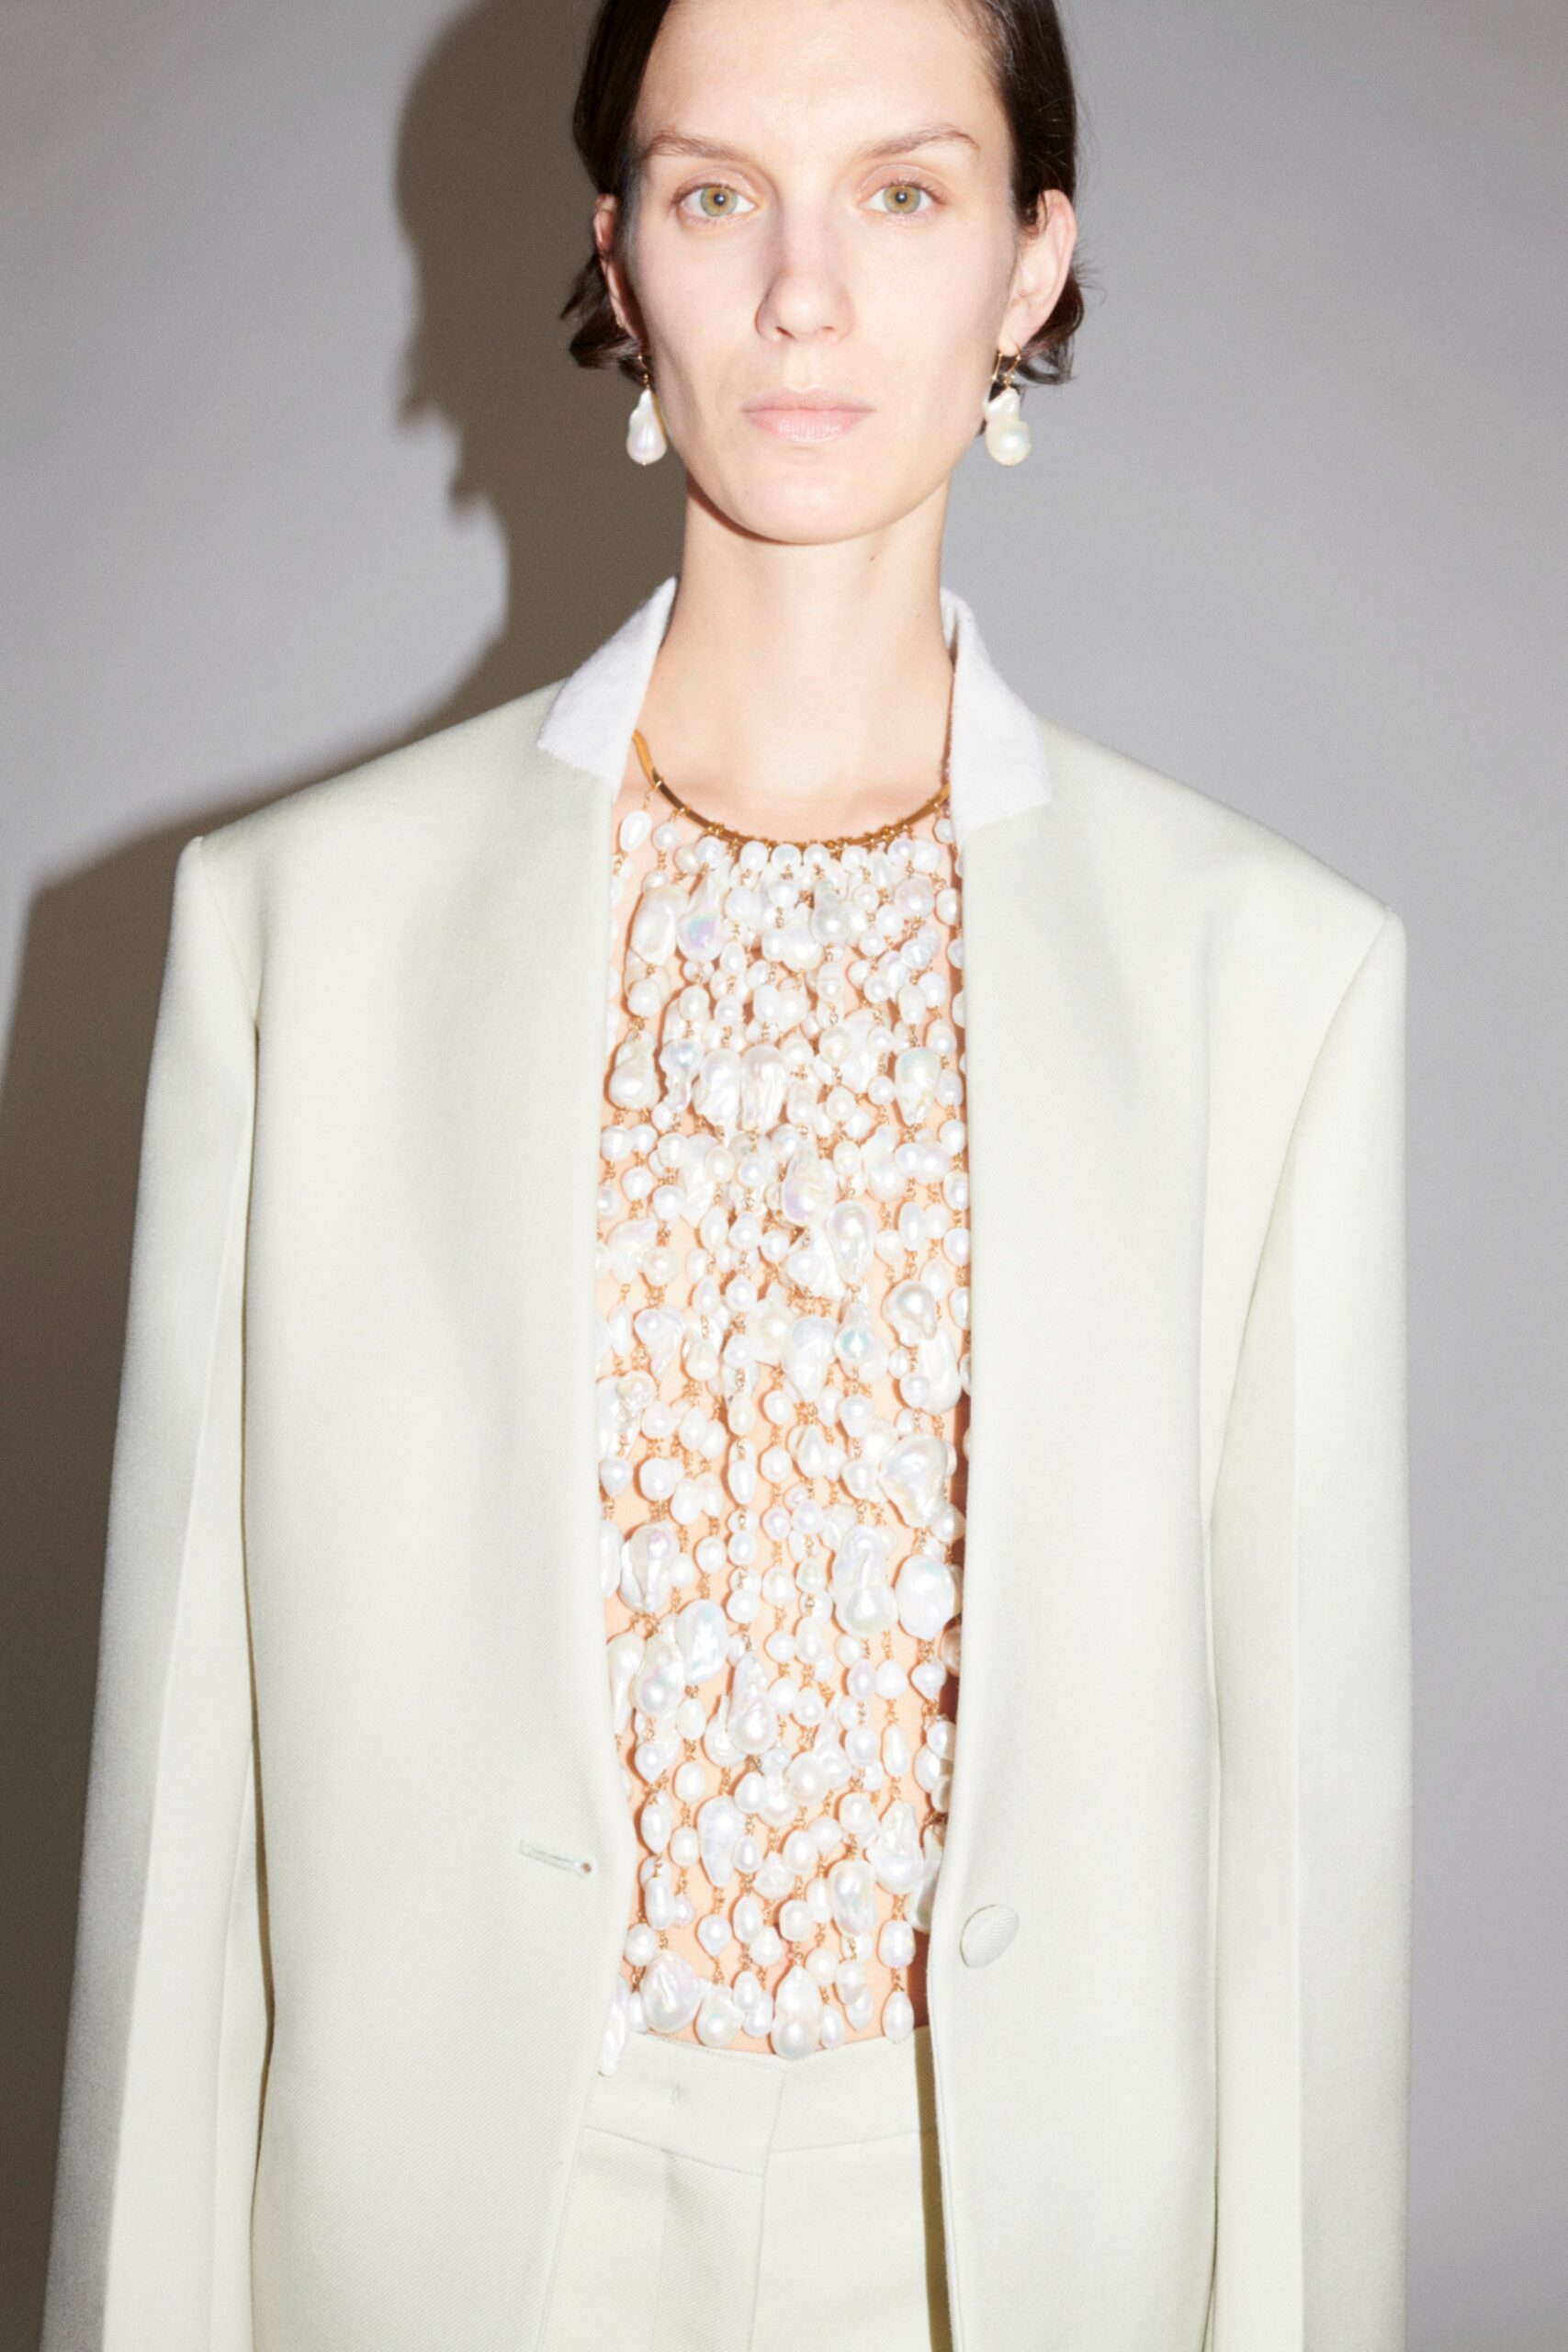 For walks in the fresh air: A seasonal collection of Jil Sander arrived at Asthik (photo 1)